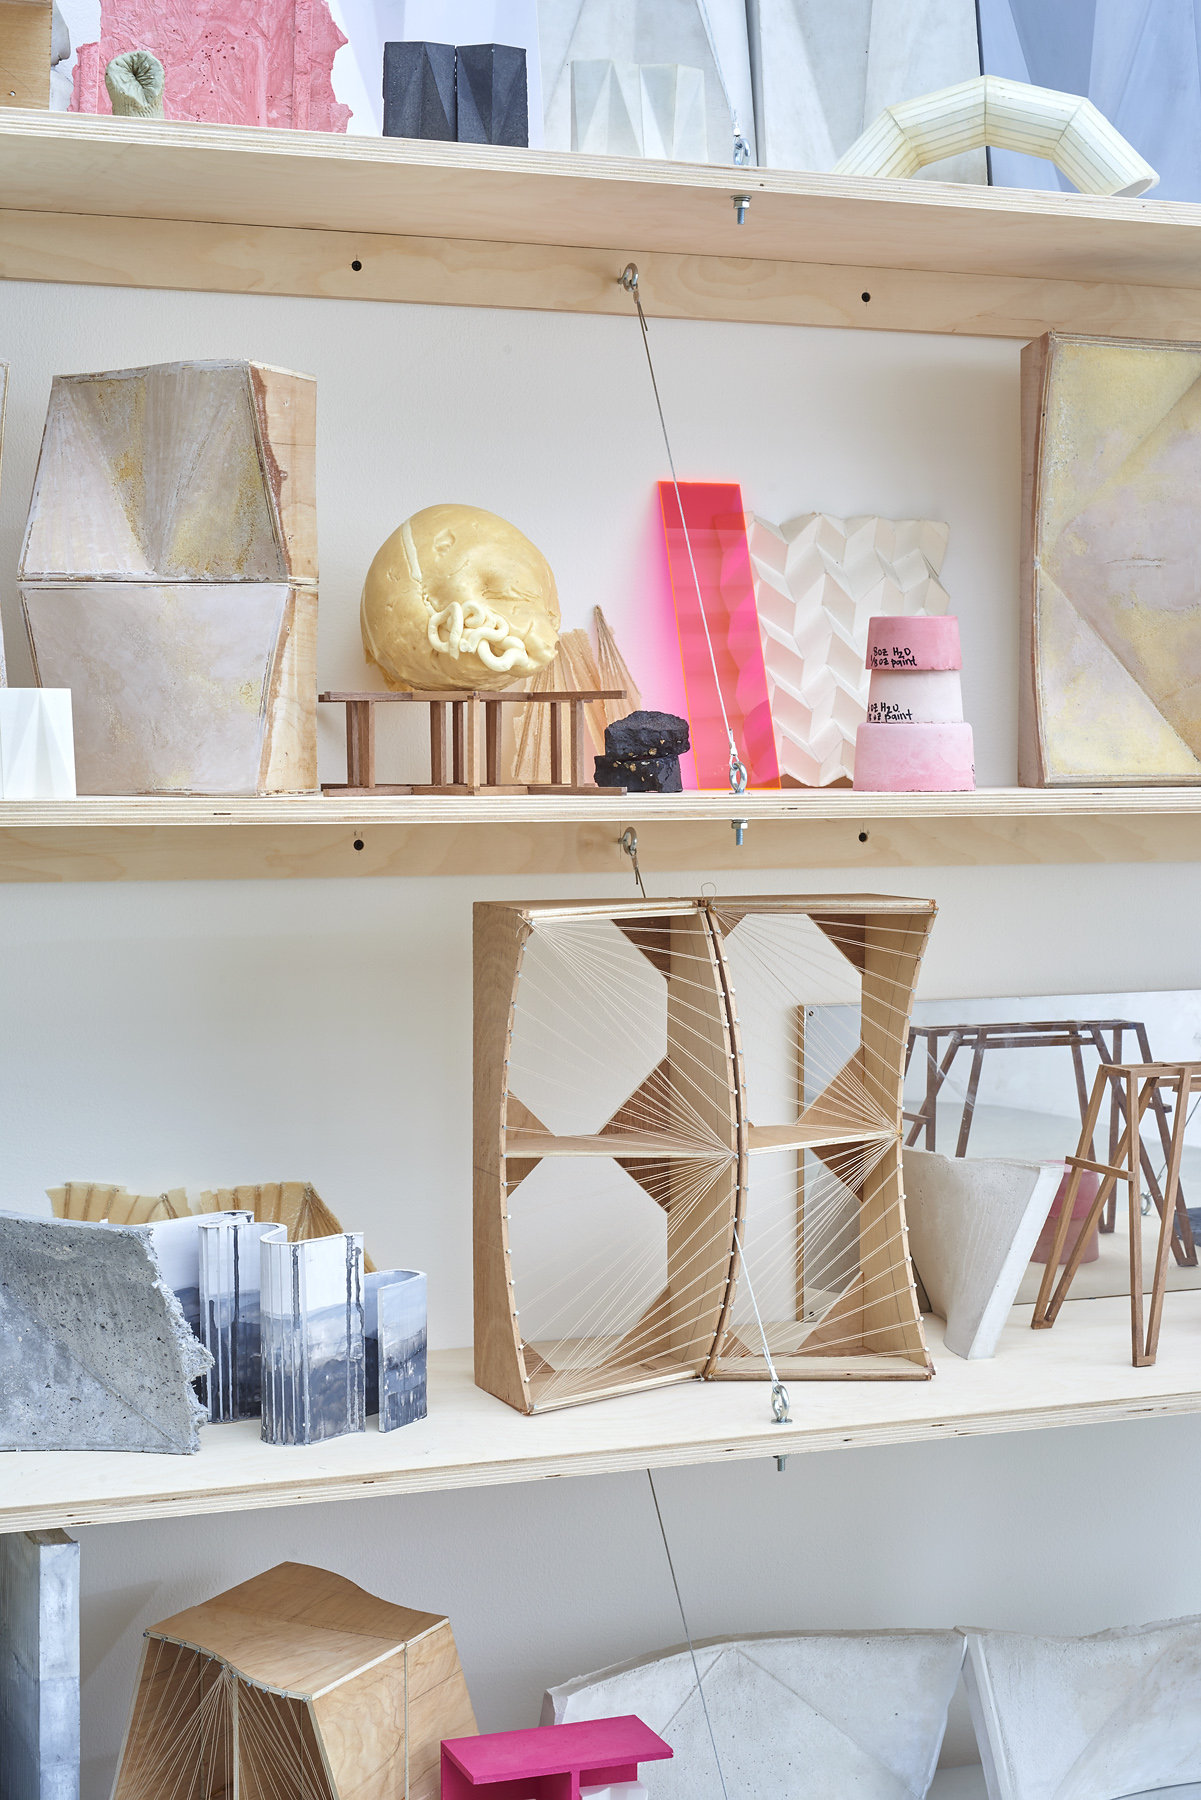 75.Hoeber_Form Index, 2015_Materials variable_Installed dimensions variable; Shelving unit - 72x60x14 in_detail